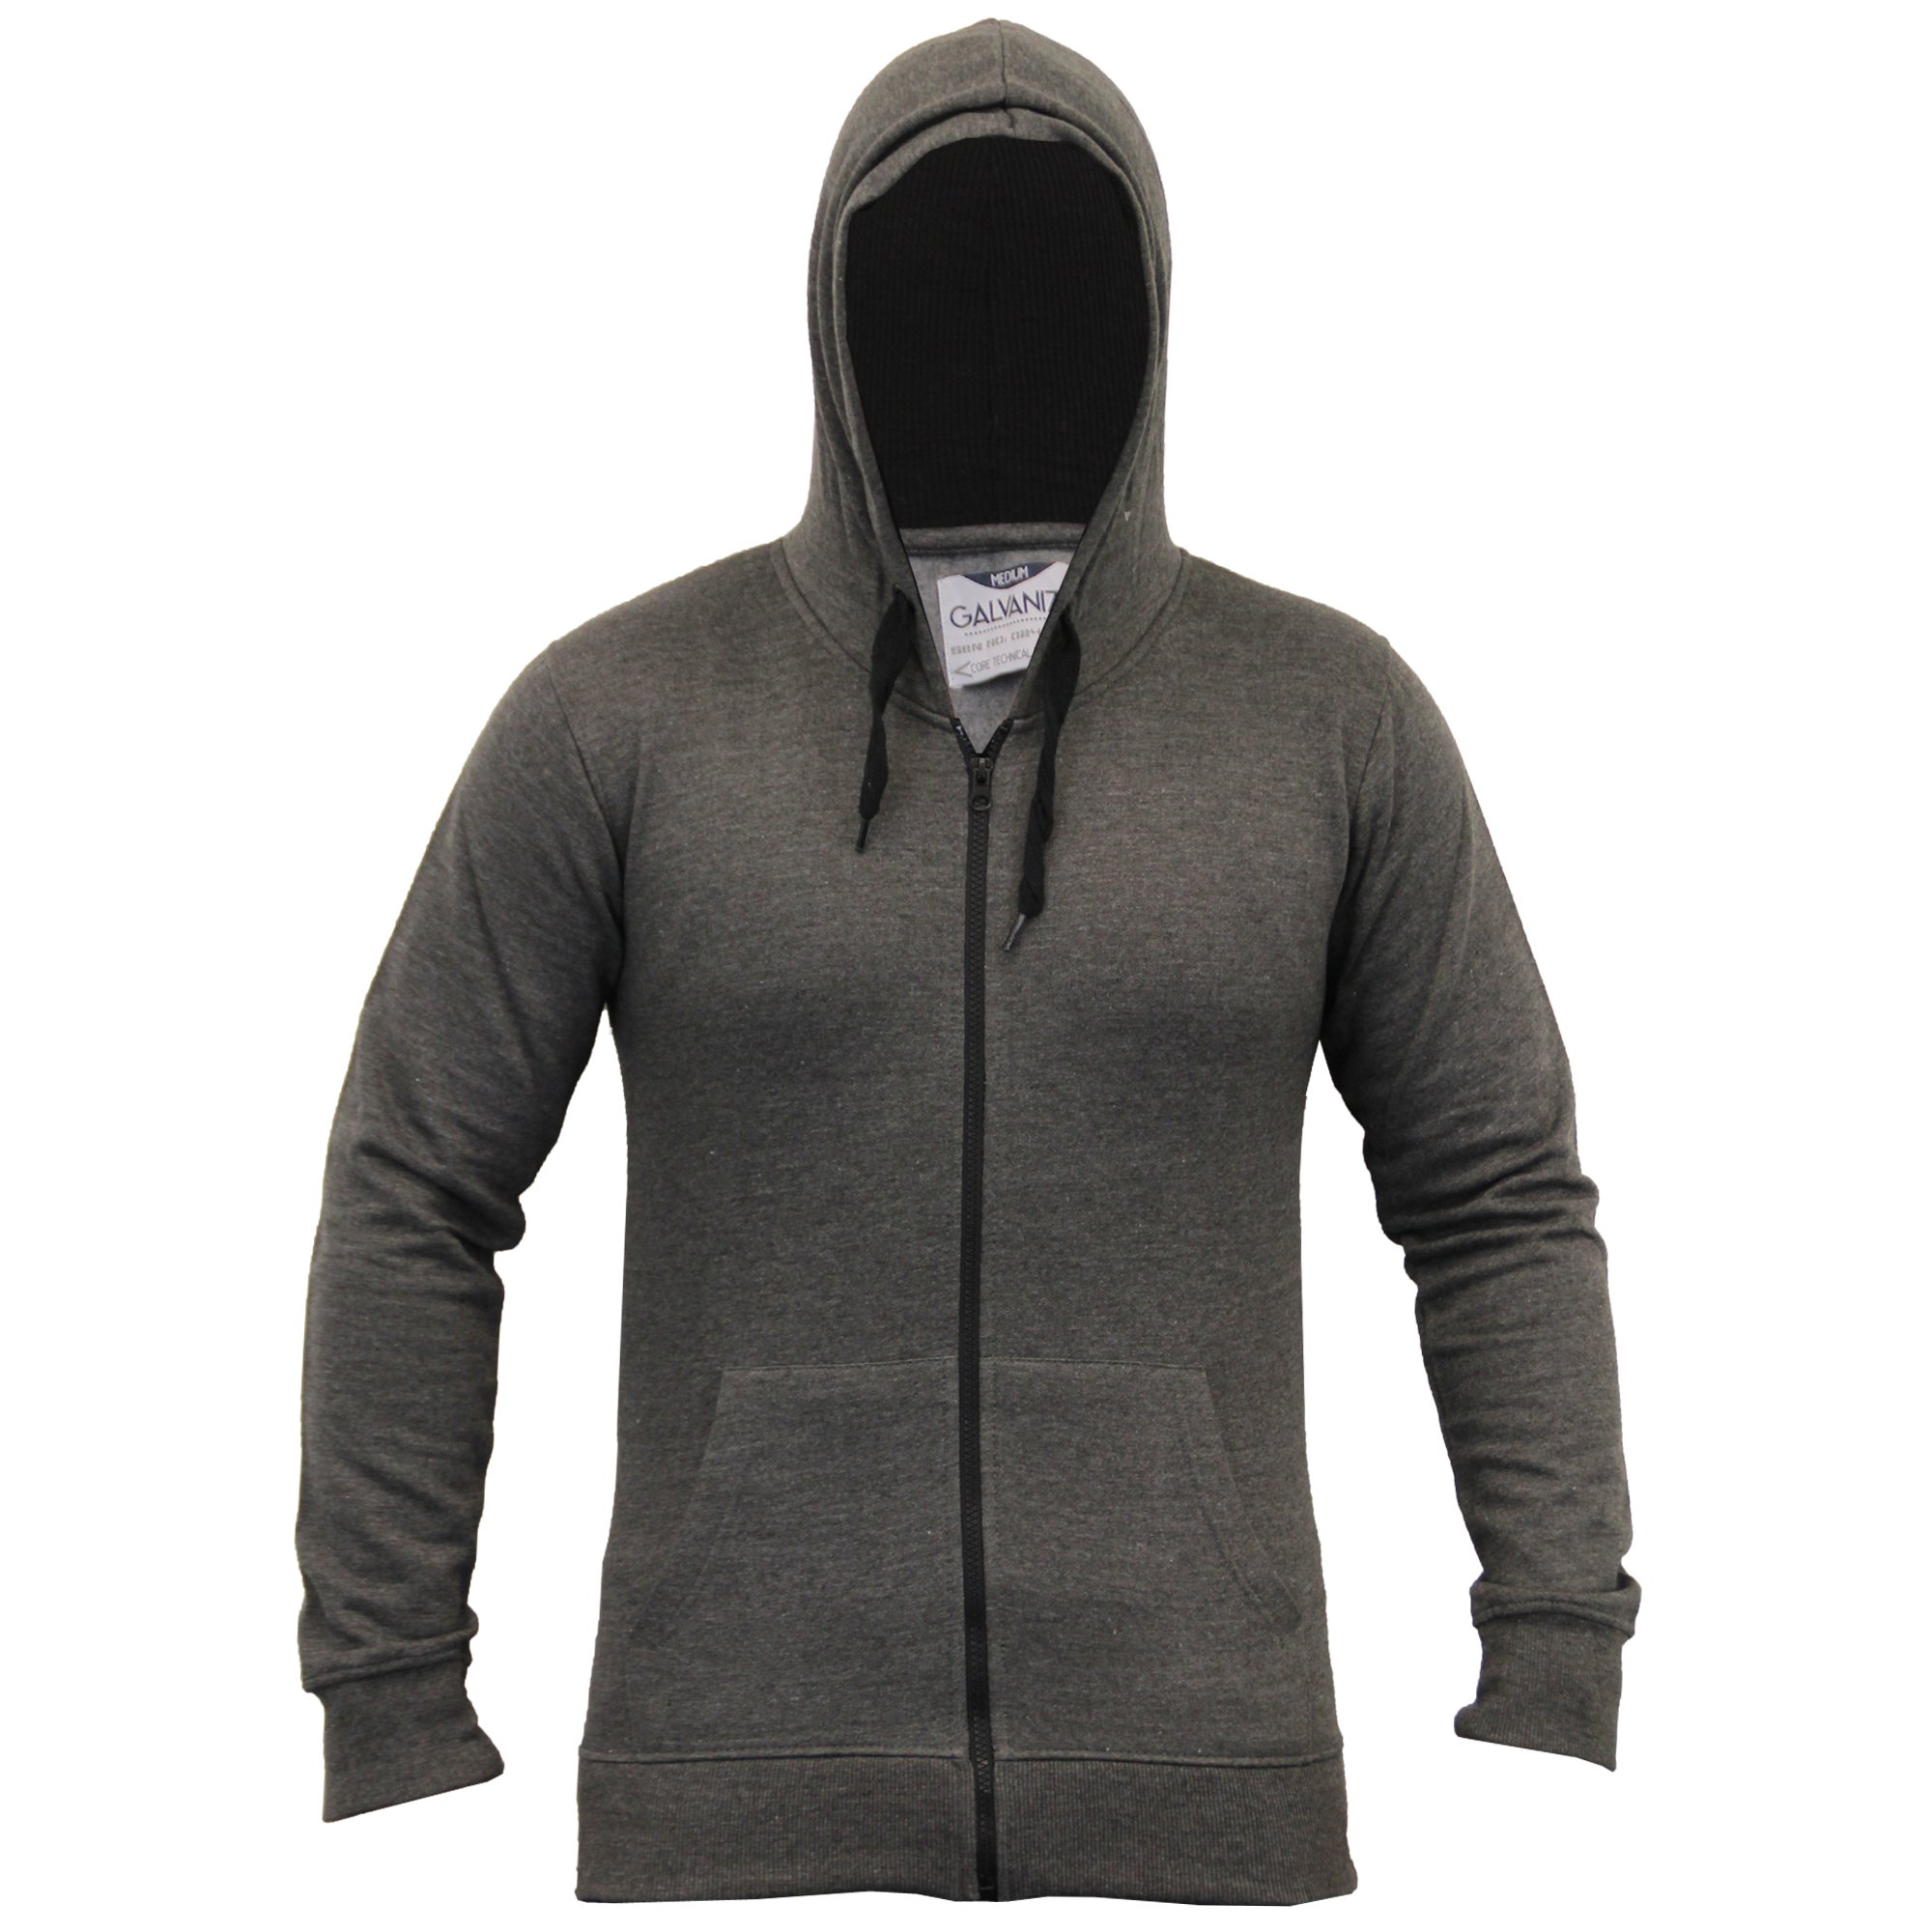 Mens-Diamond-Quilted-Hooded-Top-Fleece-Lined-Sweatshirt-By-Galvanize thumbnail 11